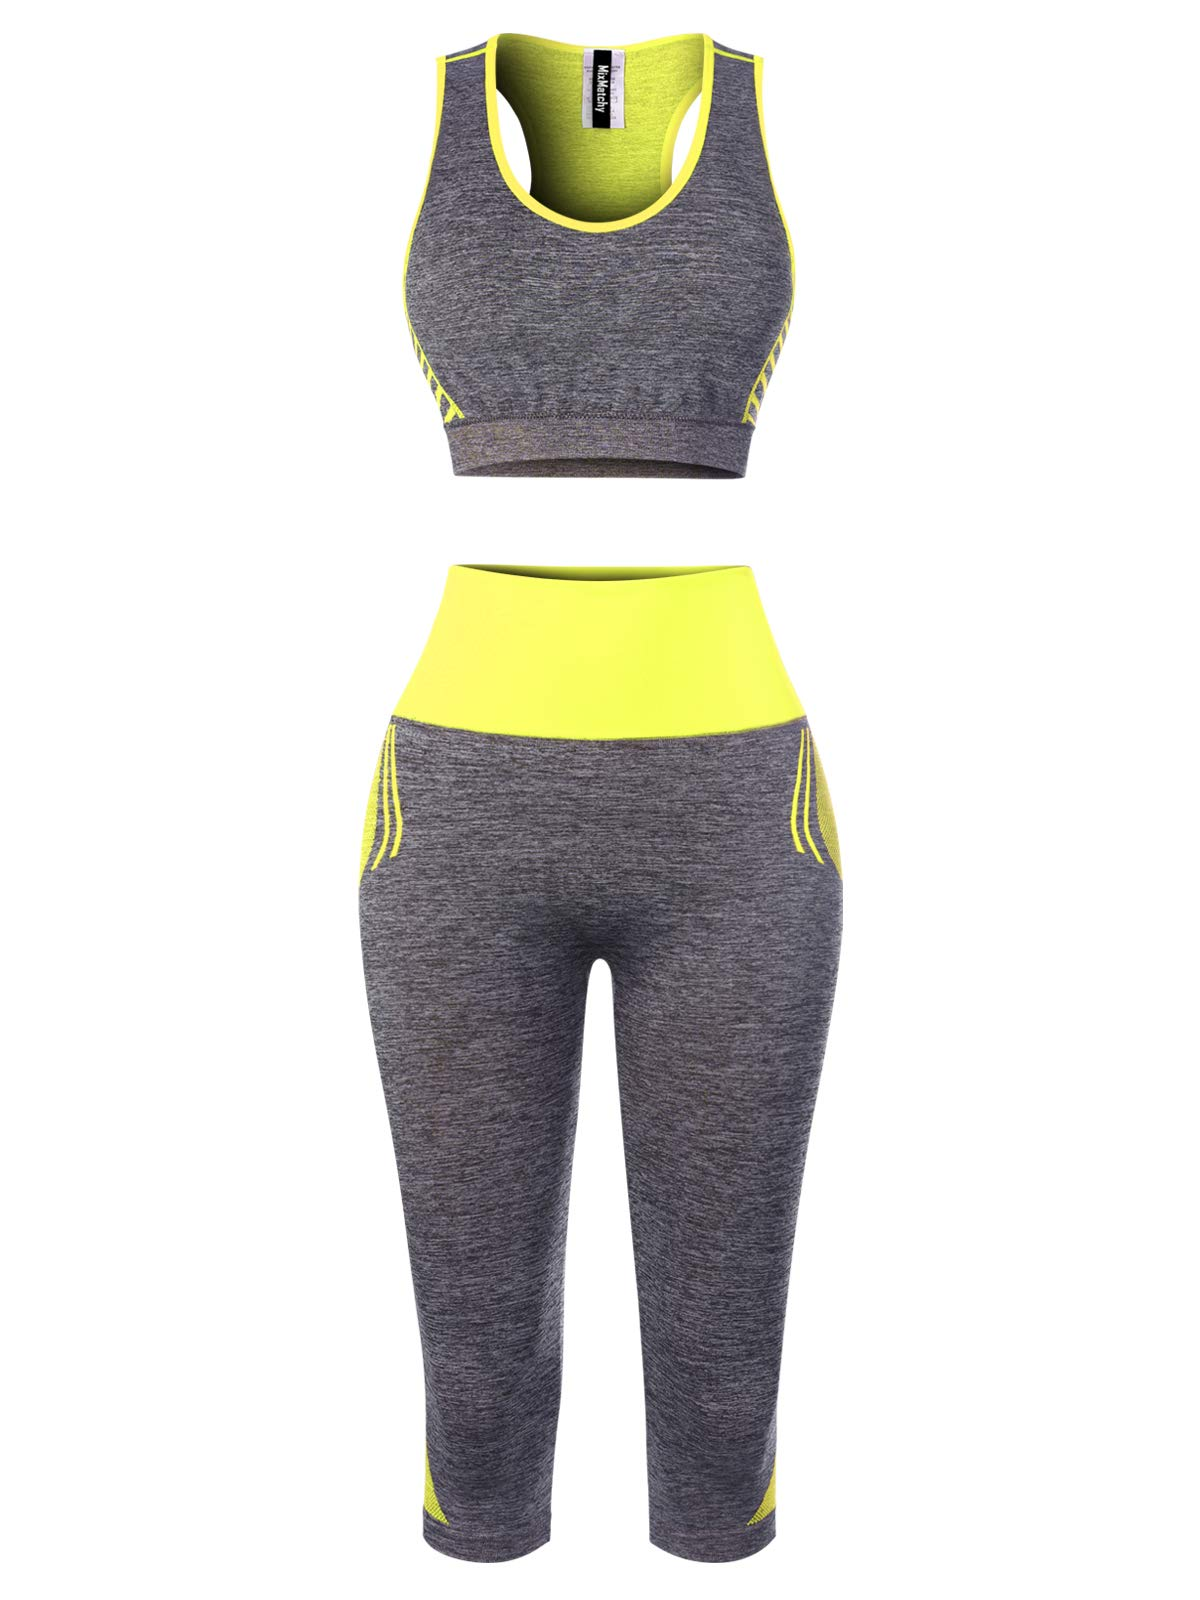 MixMatchy Women's Sports Gym Yoga Workout Activewear Sets Tank Crop Top & Capri Leggings Set Lime ONE by MixMatchy